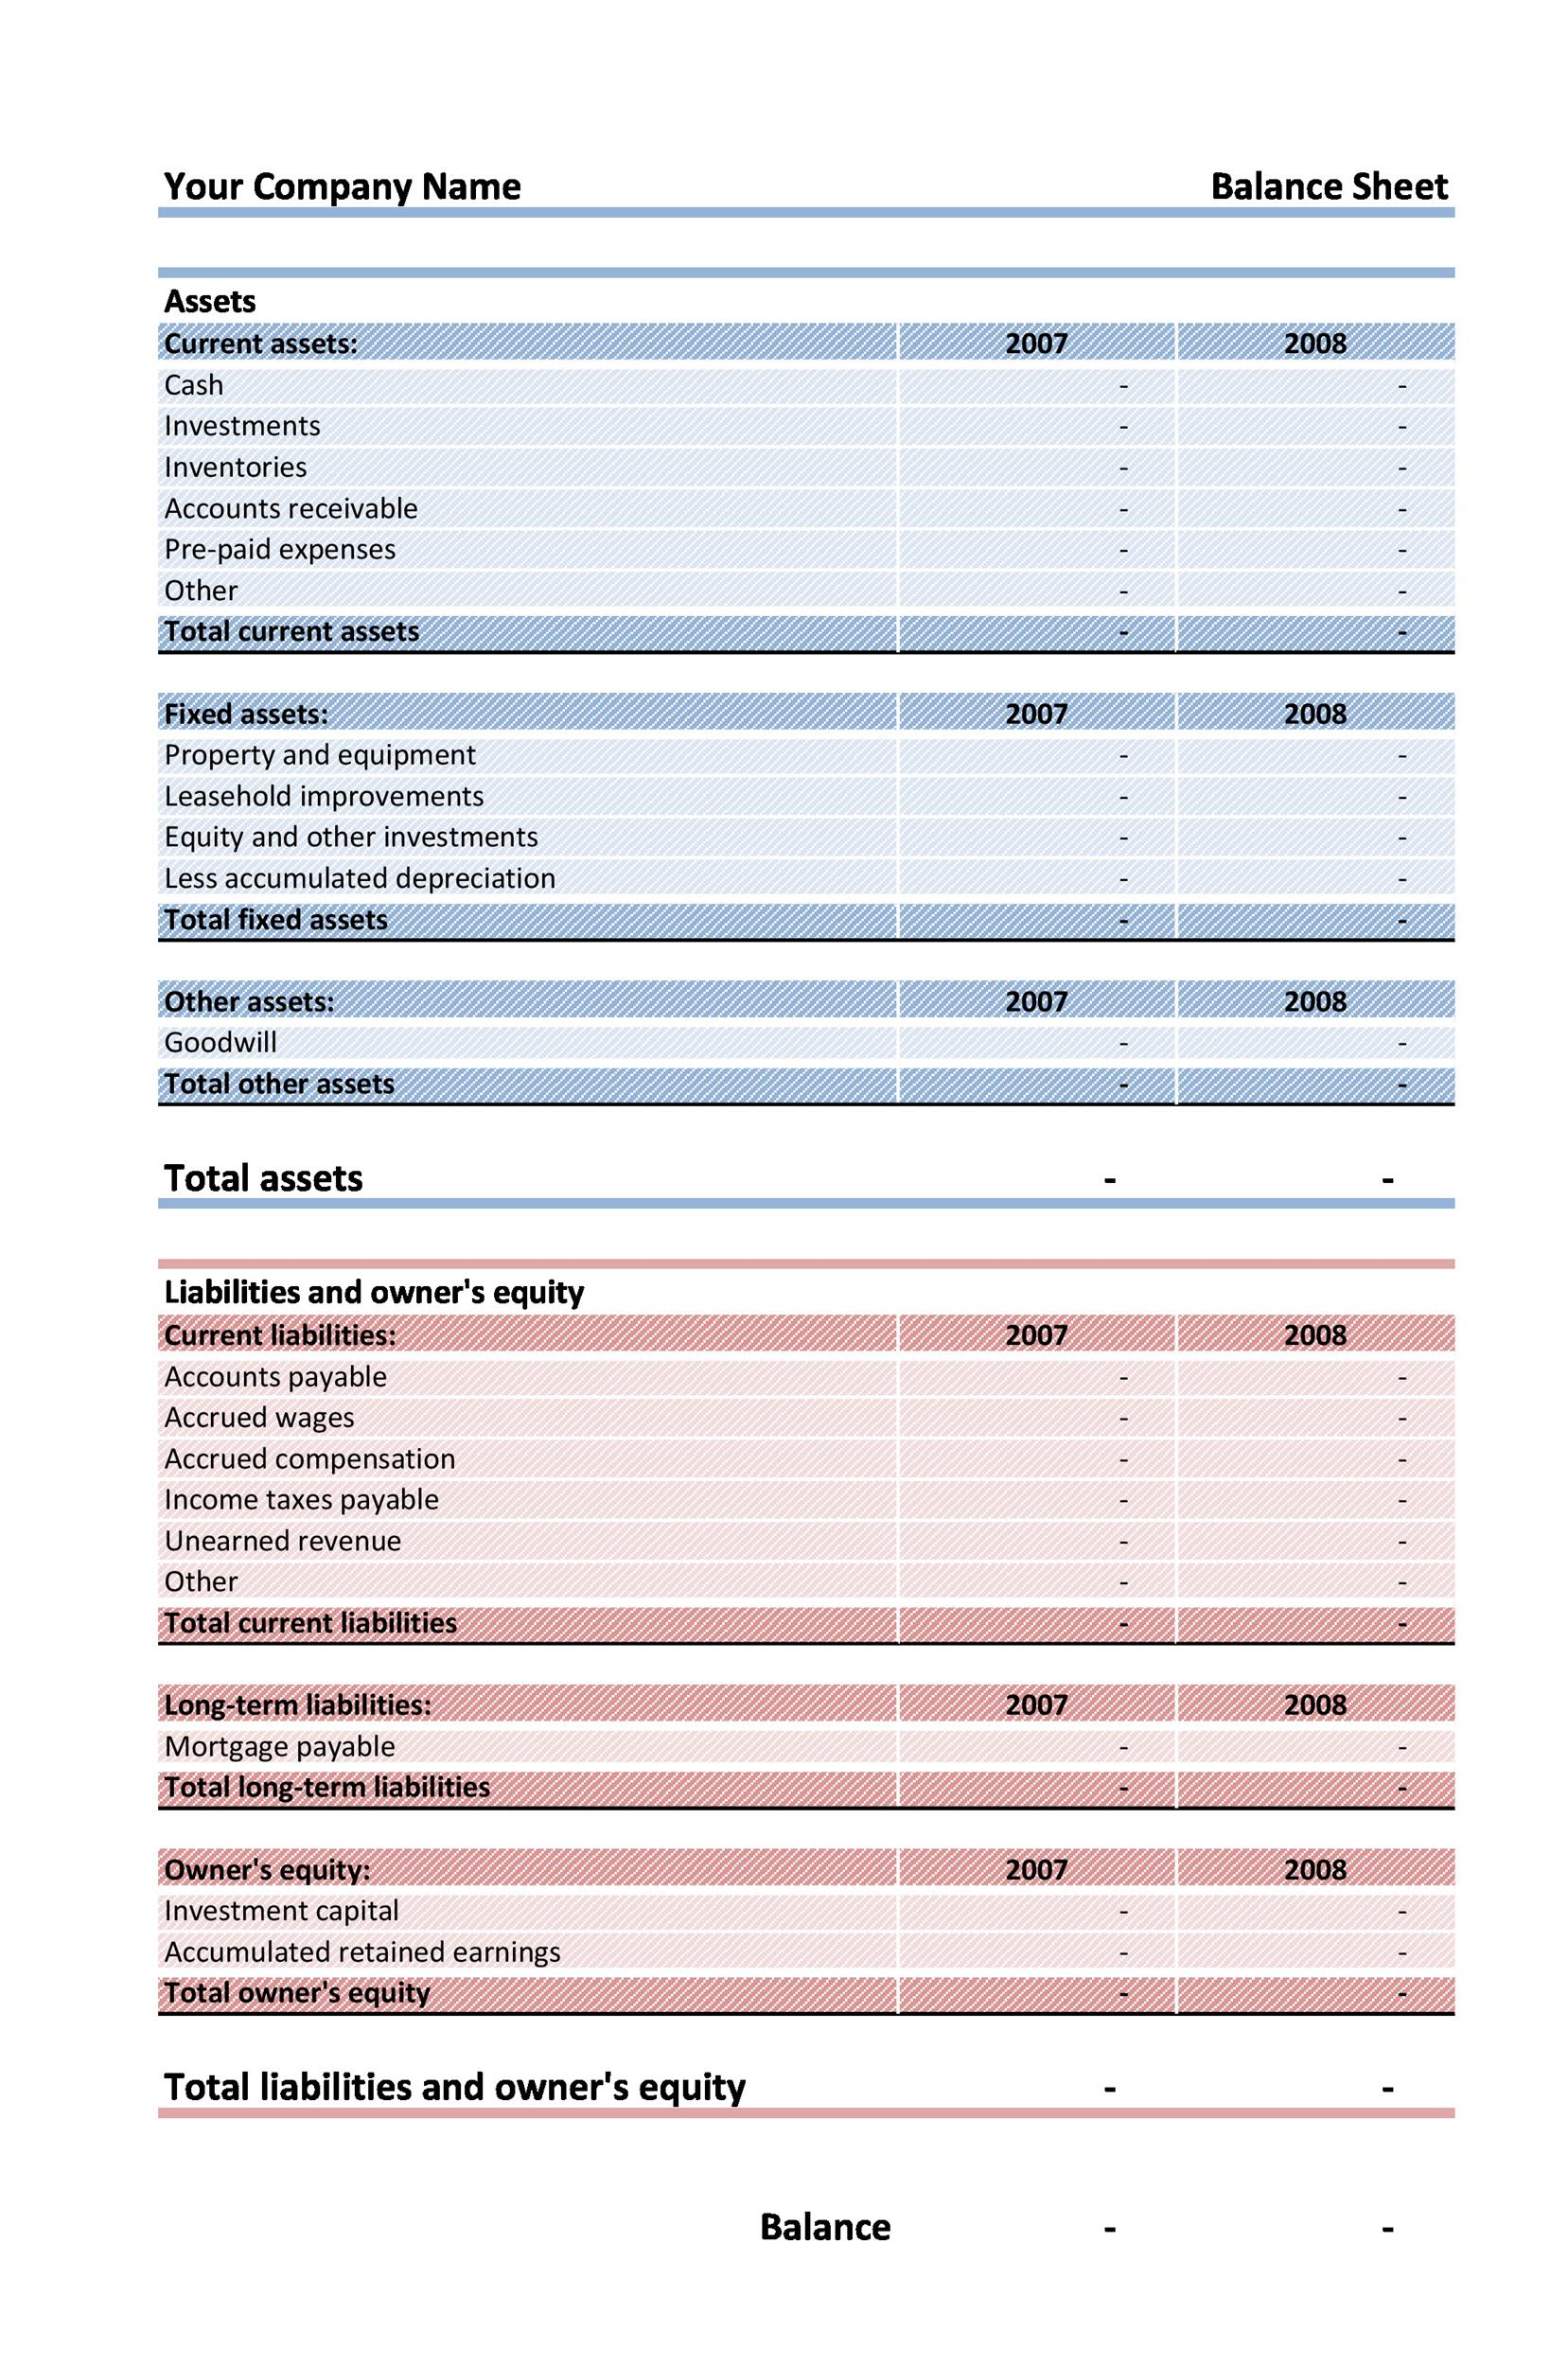 Free Balance Sheet Templates  Examples  Template Lab